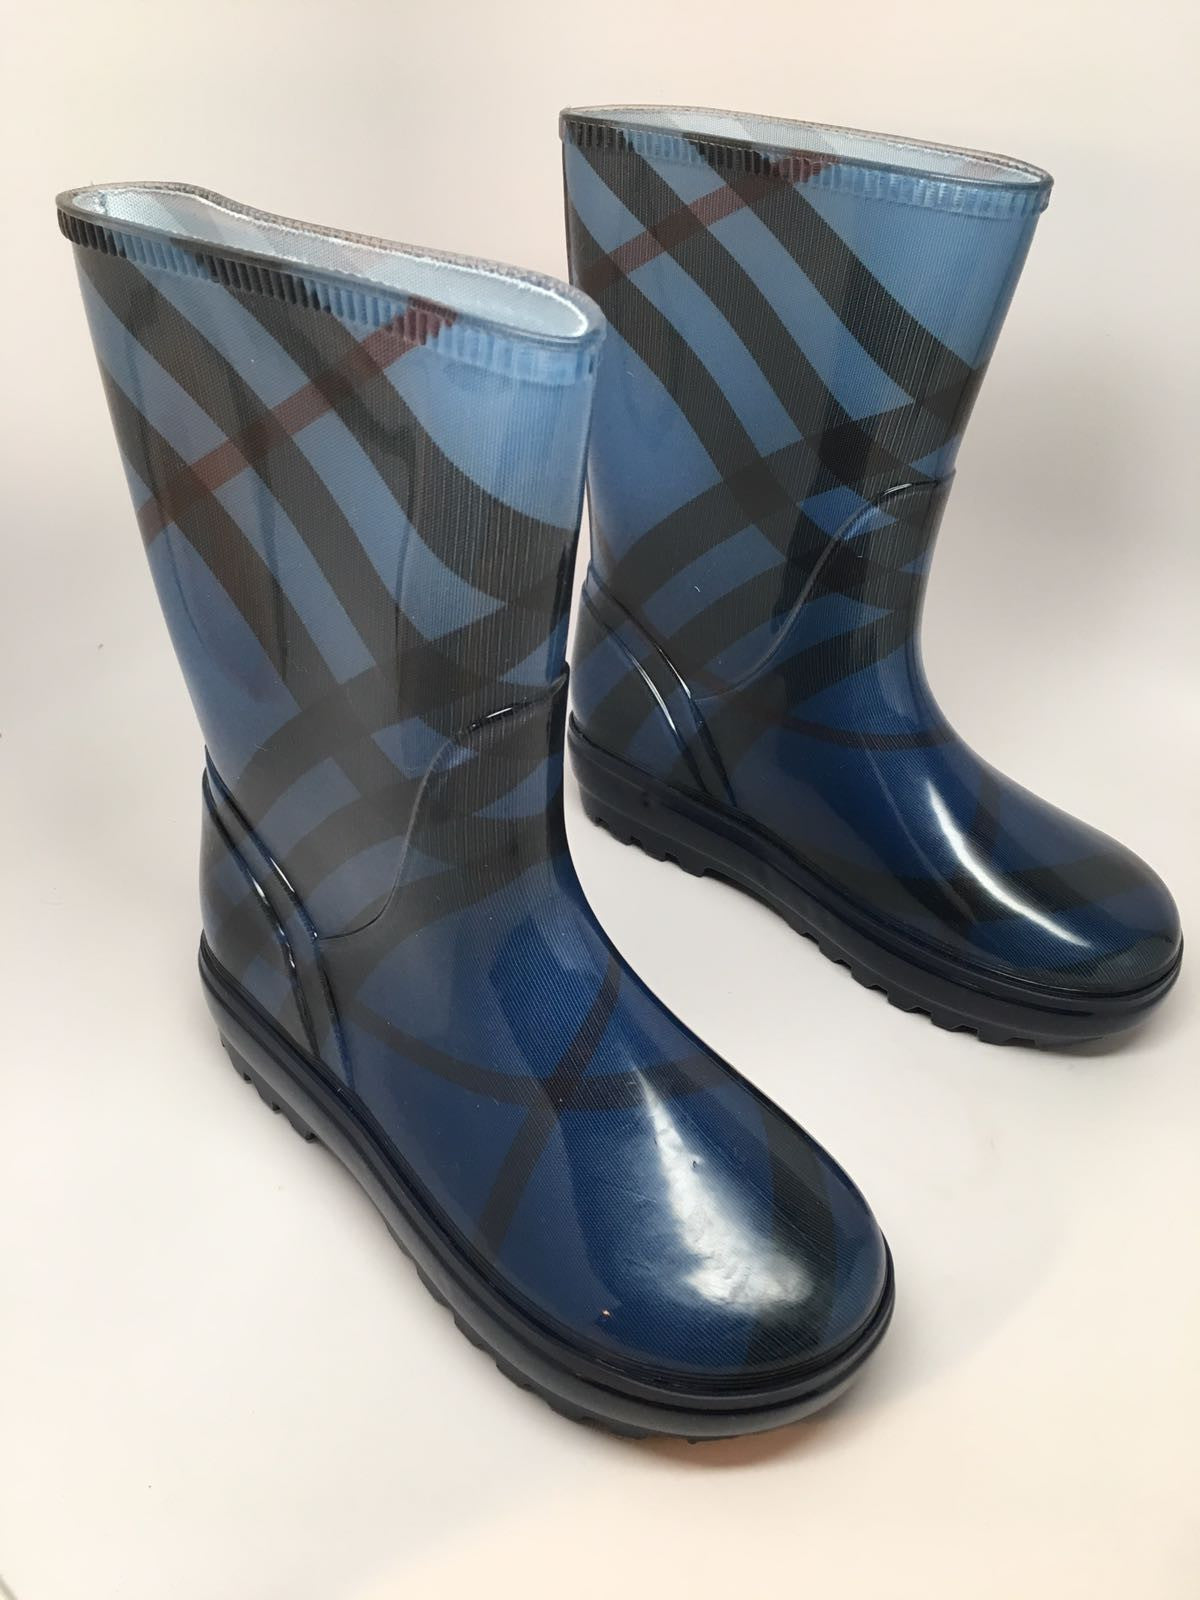 BURBERRY FROGRISE RAIN BOOT, JET BLUE - SIZE 33/34